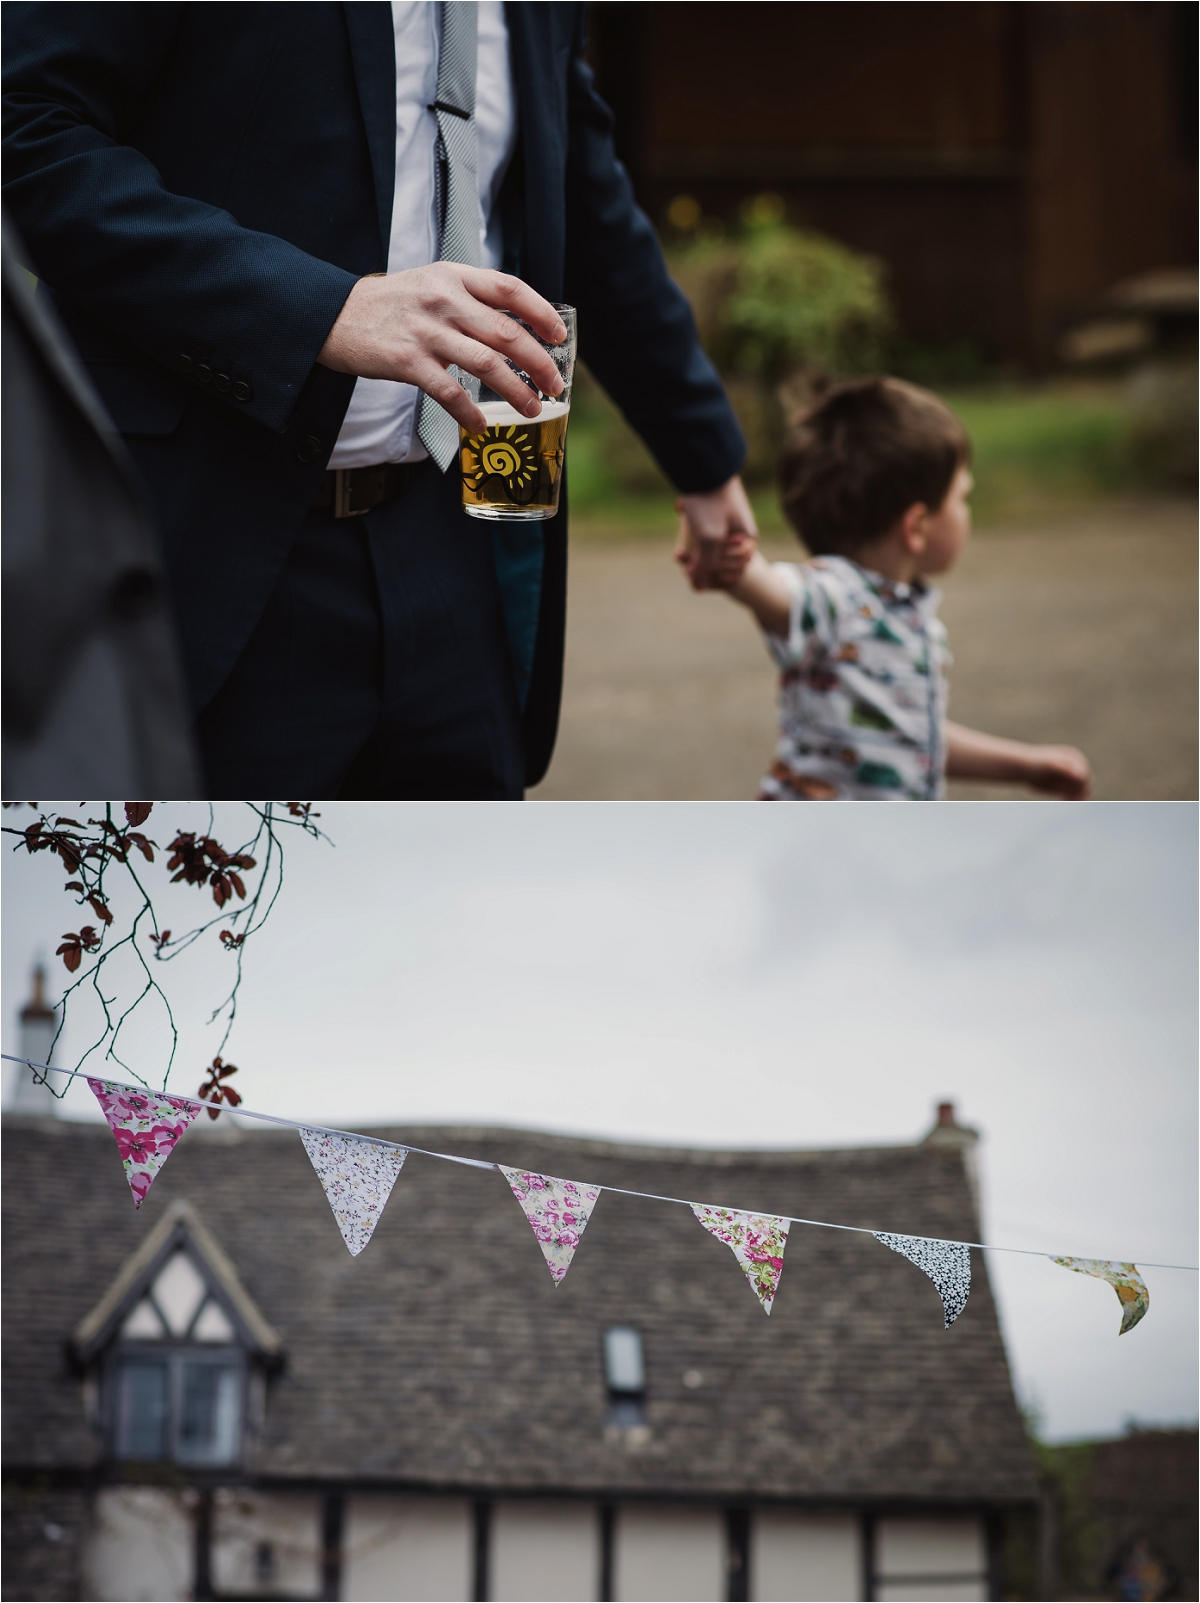 chris_emma_wedding_the_Fleece_inn_0021.jpg